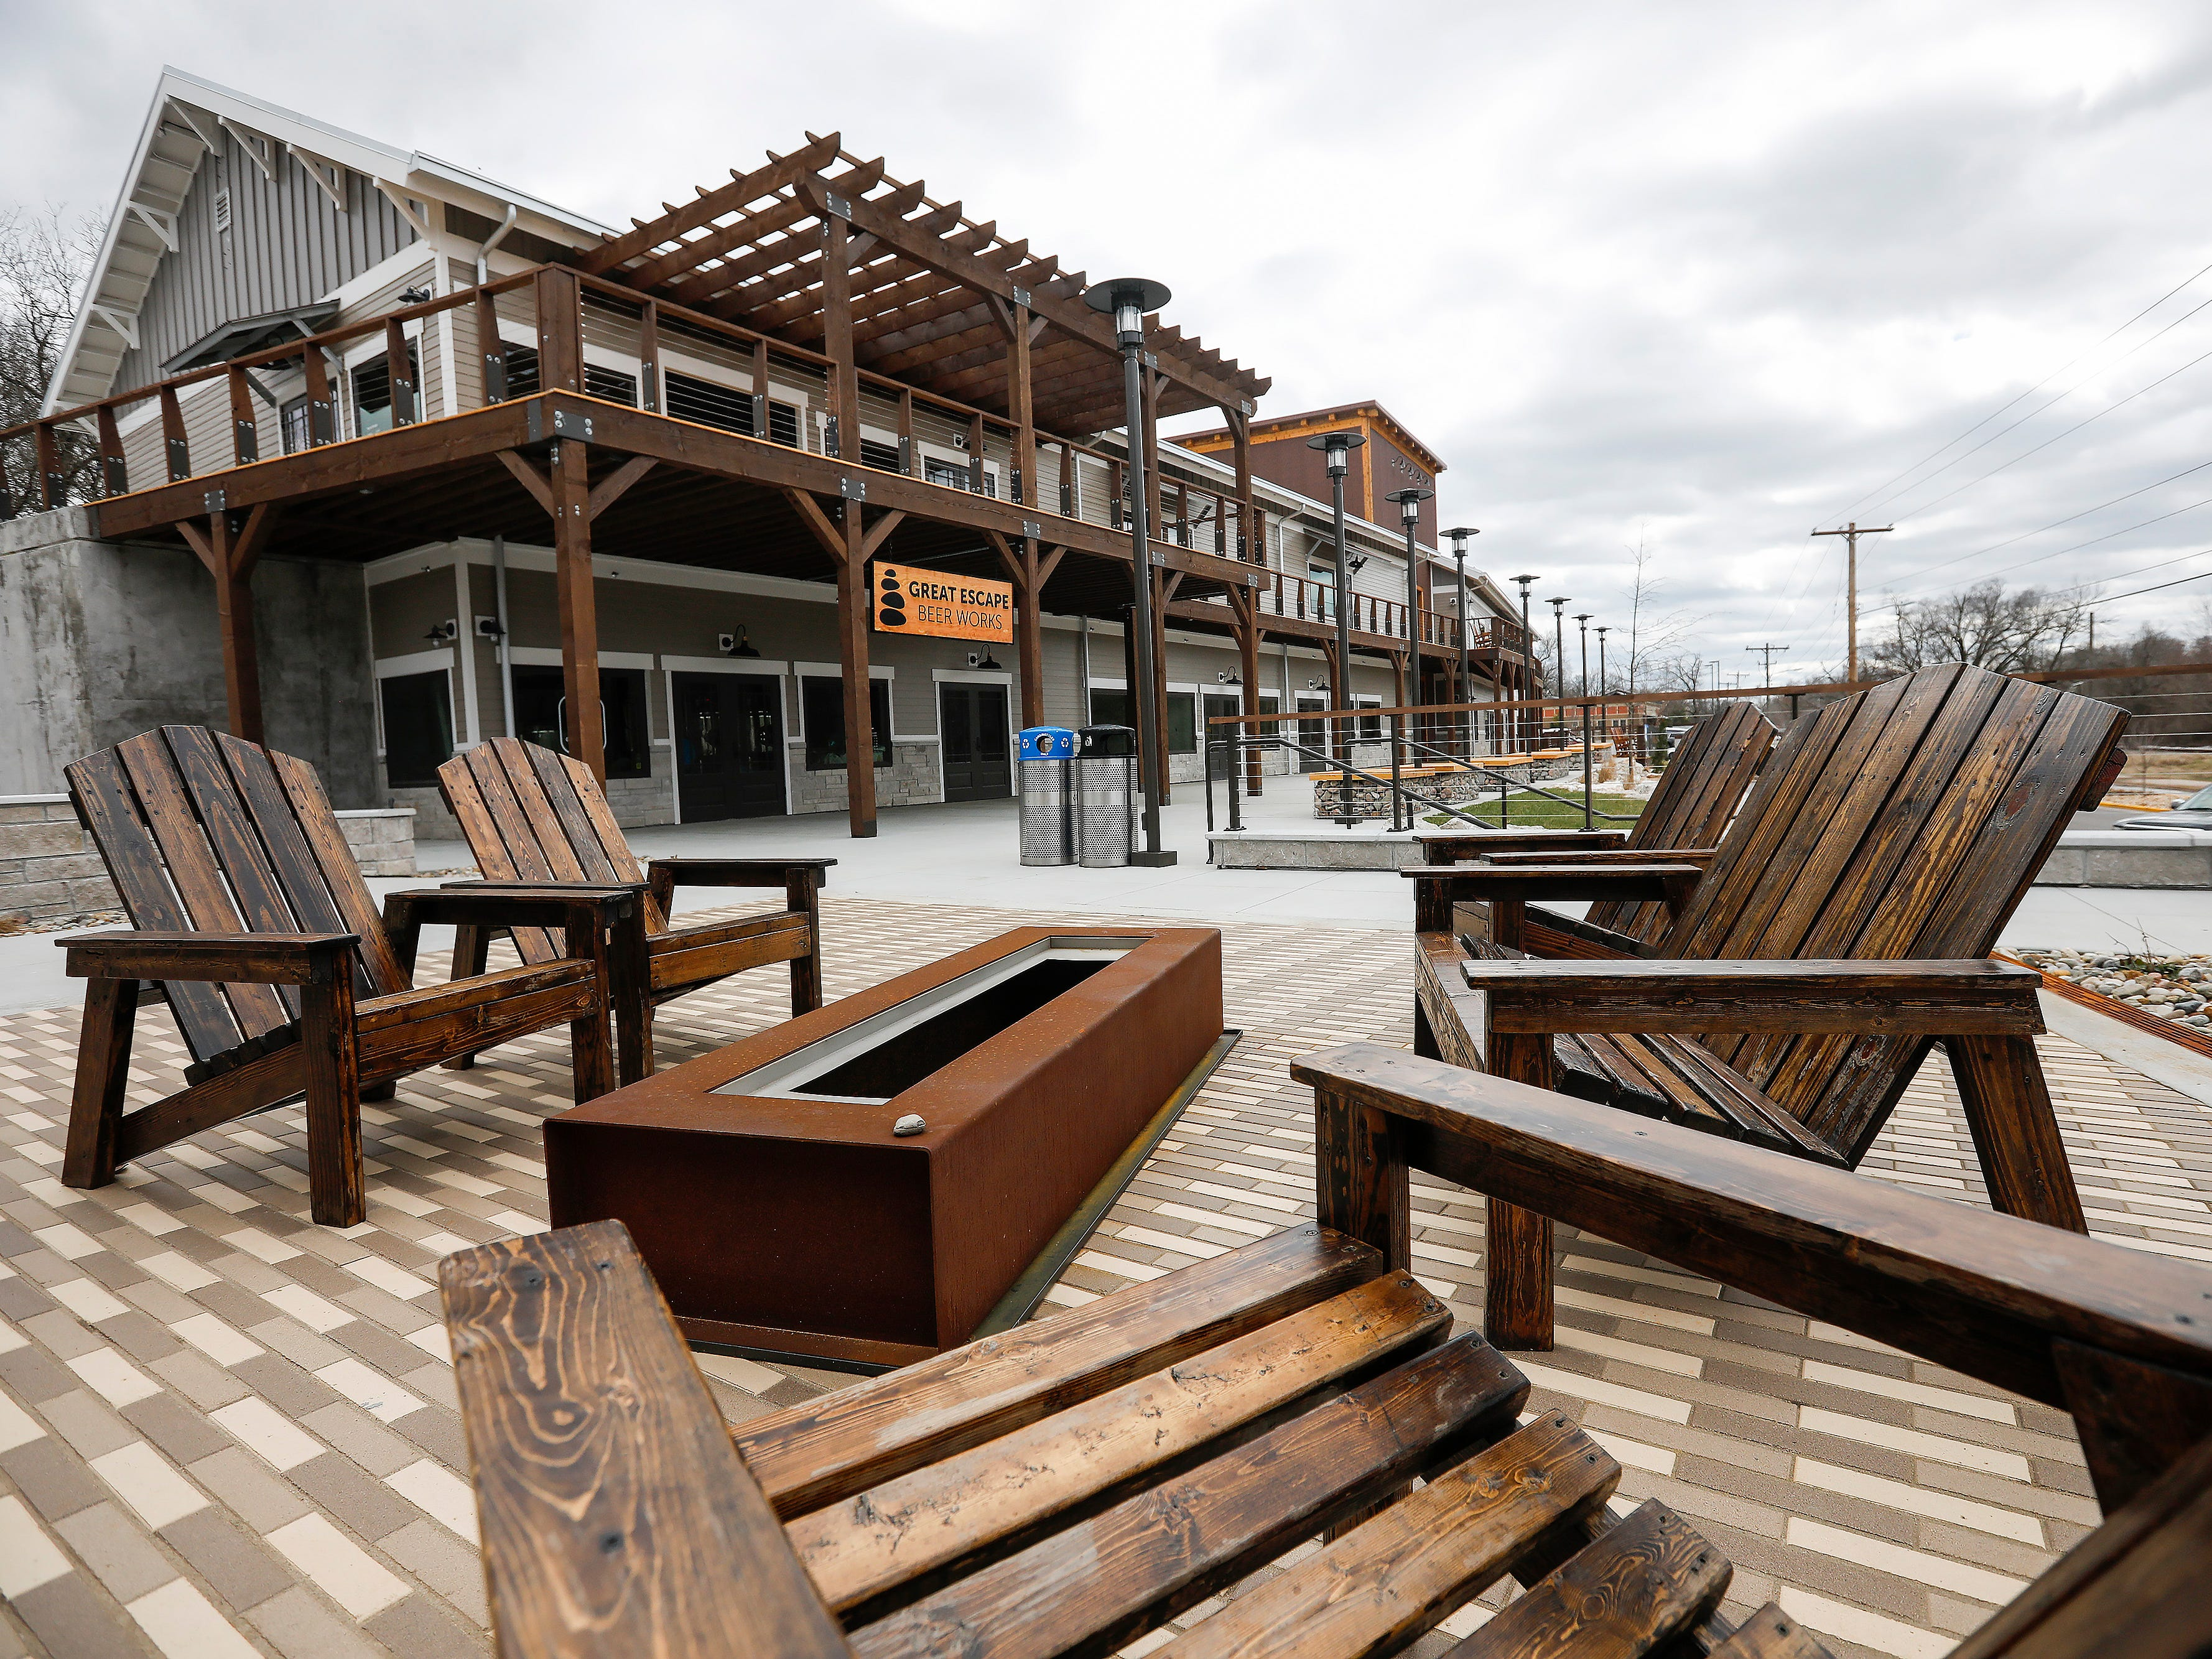 Great Escape Beer Works is the first business at the new Quarry Town development in the Galloway neighborhood.